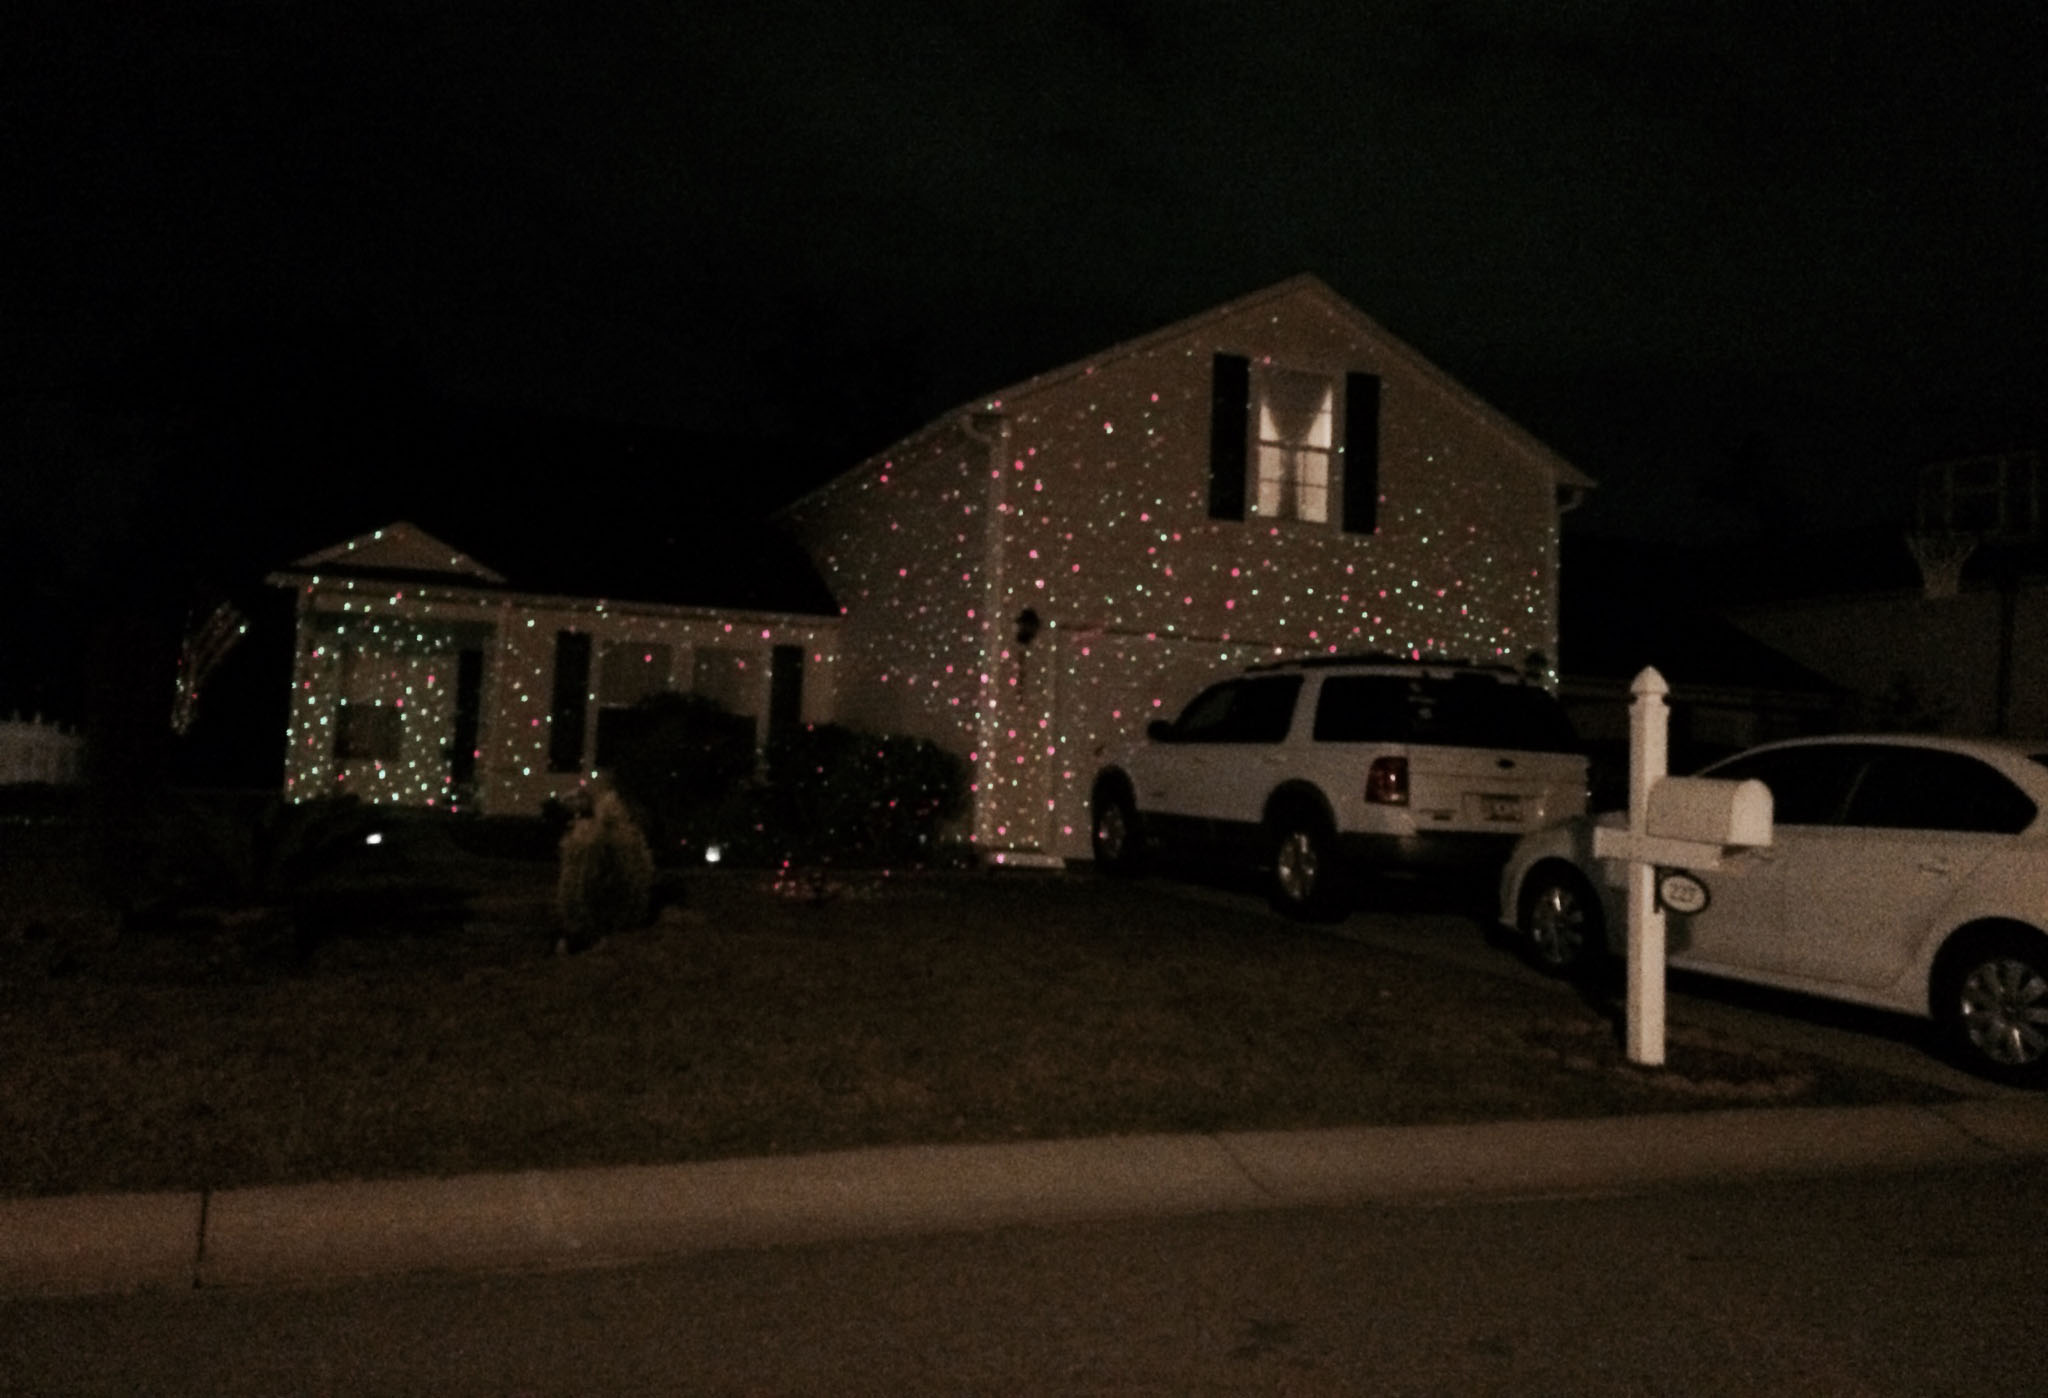 say hello to laser christmas lights i took a photo of this house in sids neighborhood last night this home is